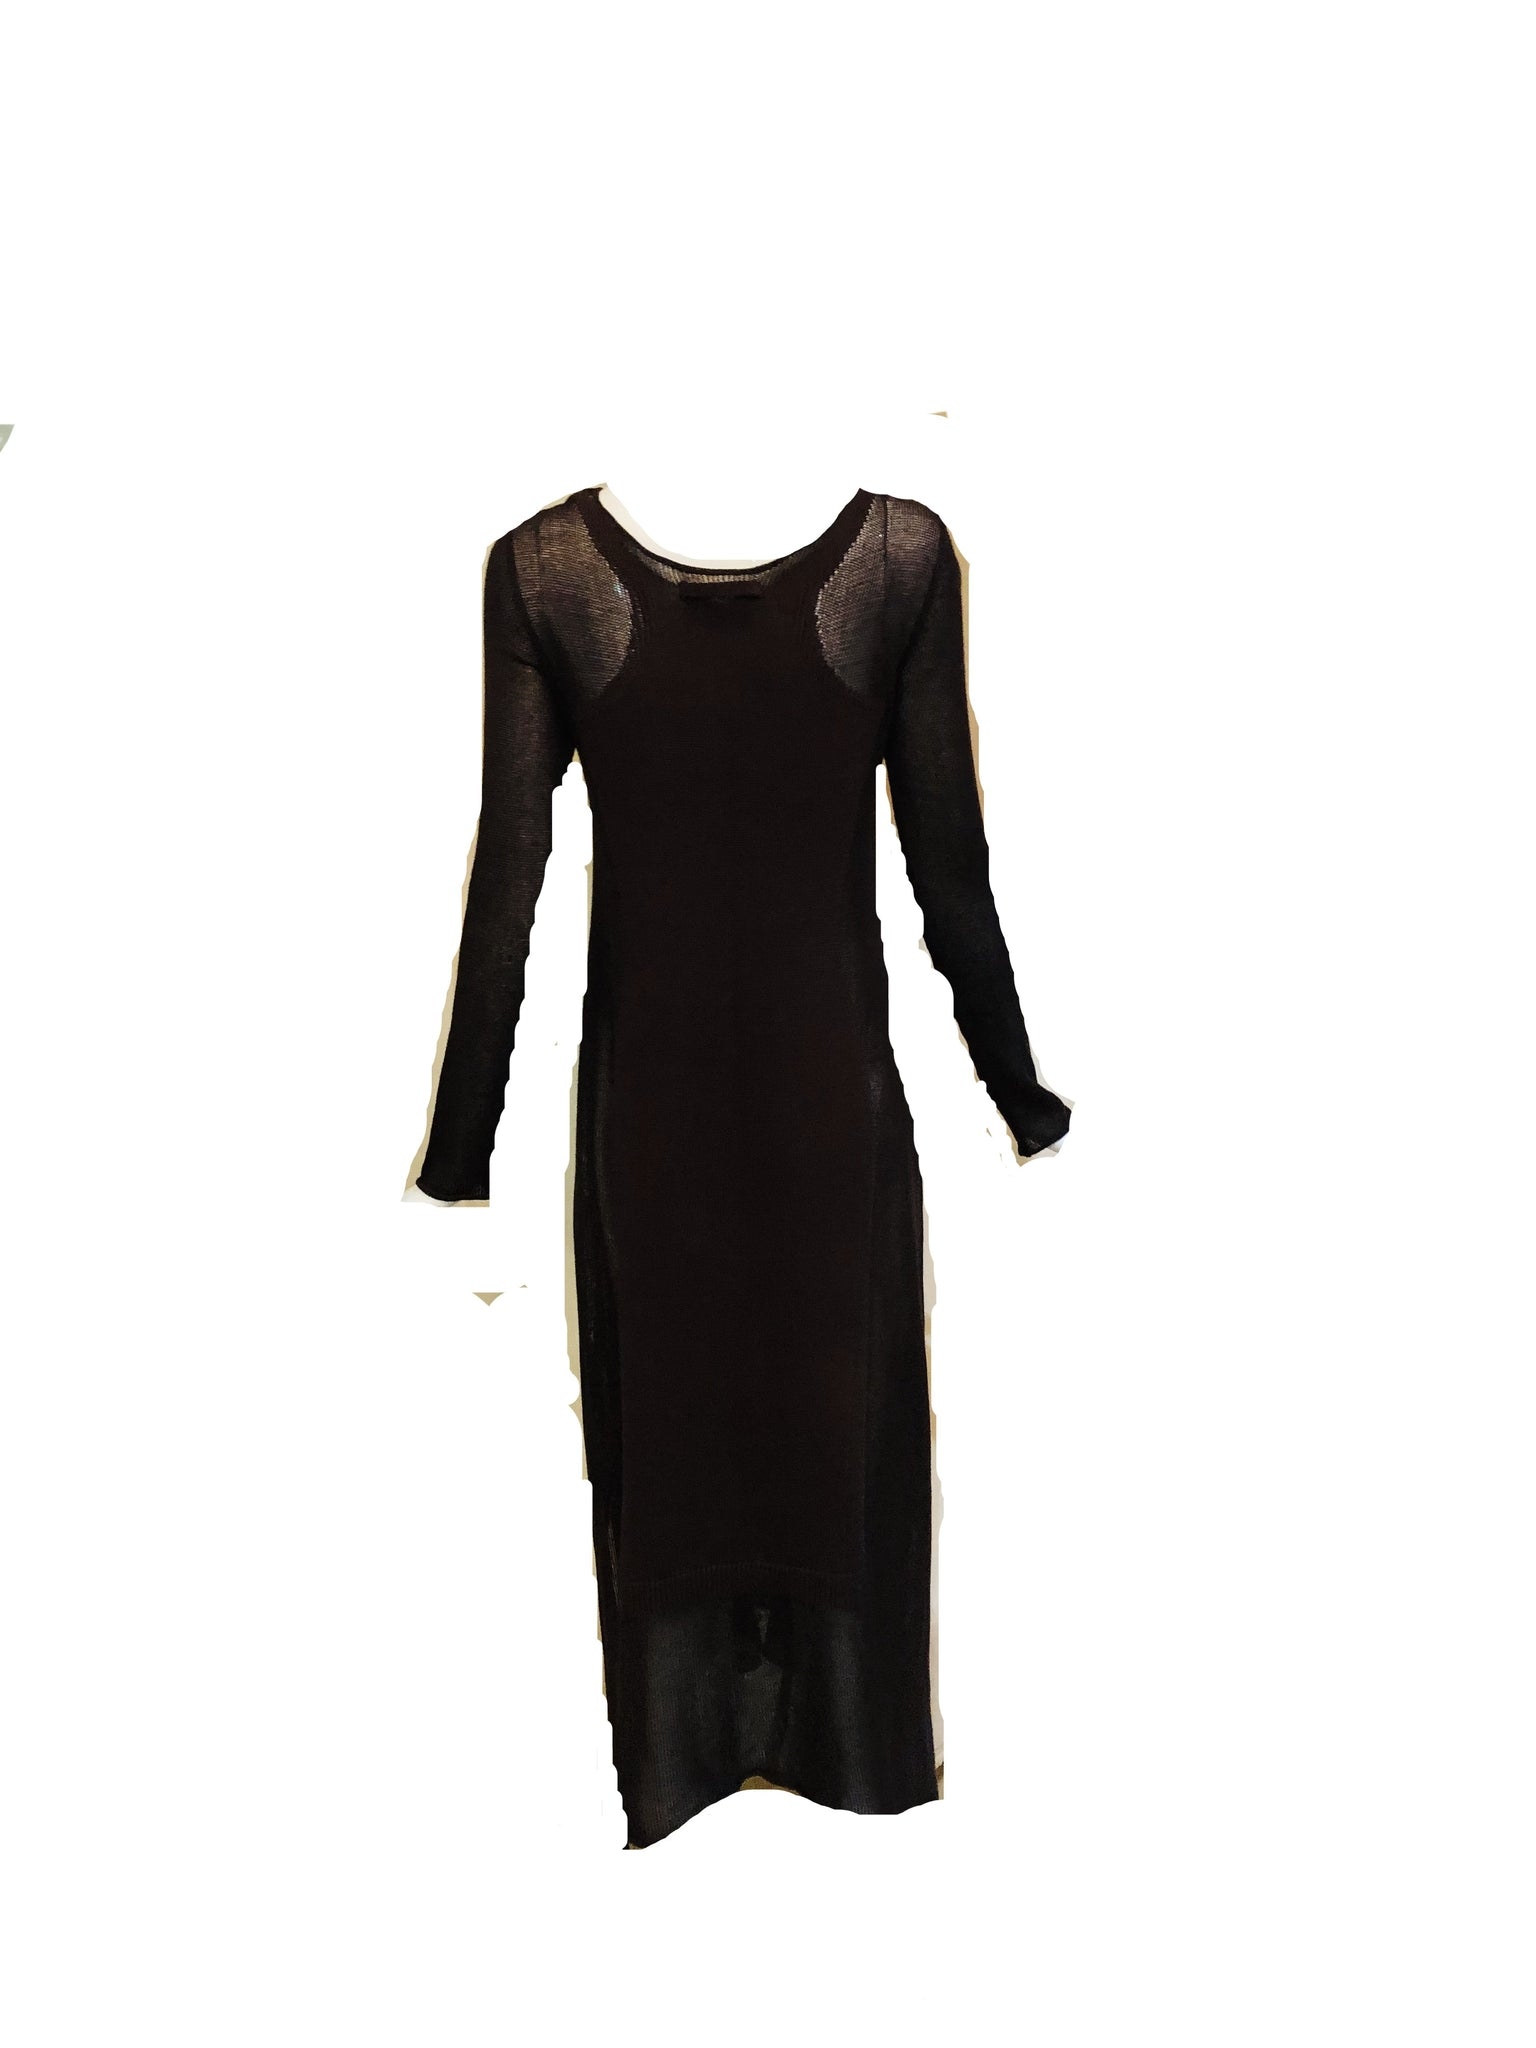 Gaultier Sexy Brown Knit Body Con  Full Length Tunic  BACK 2 of 6